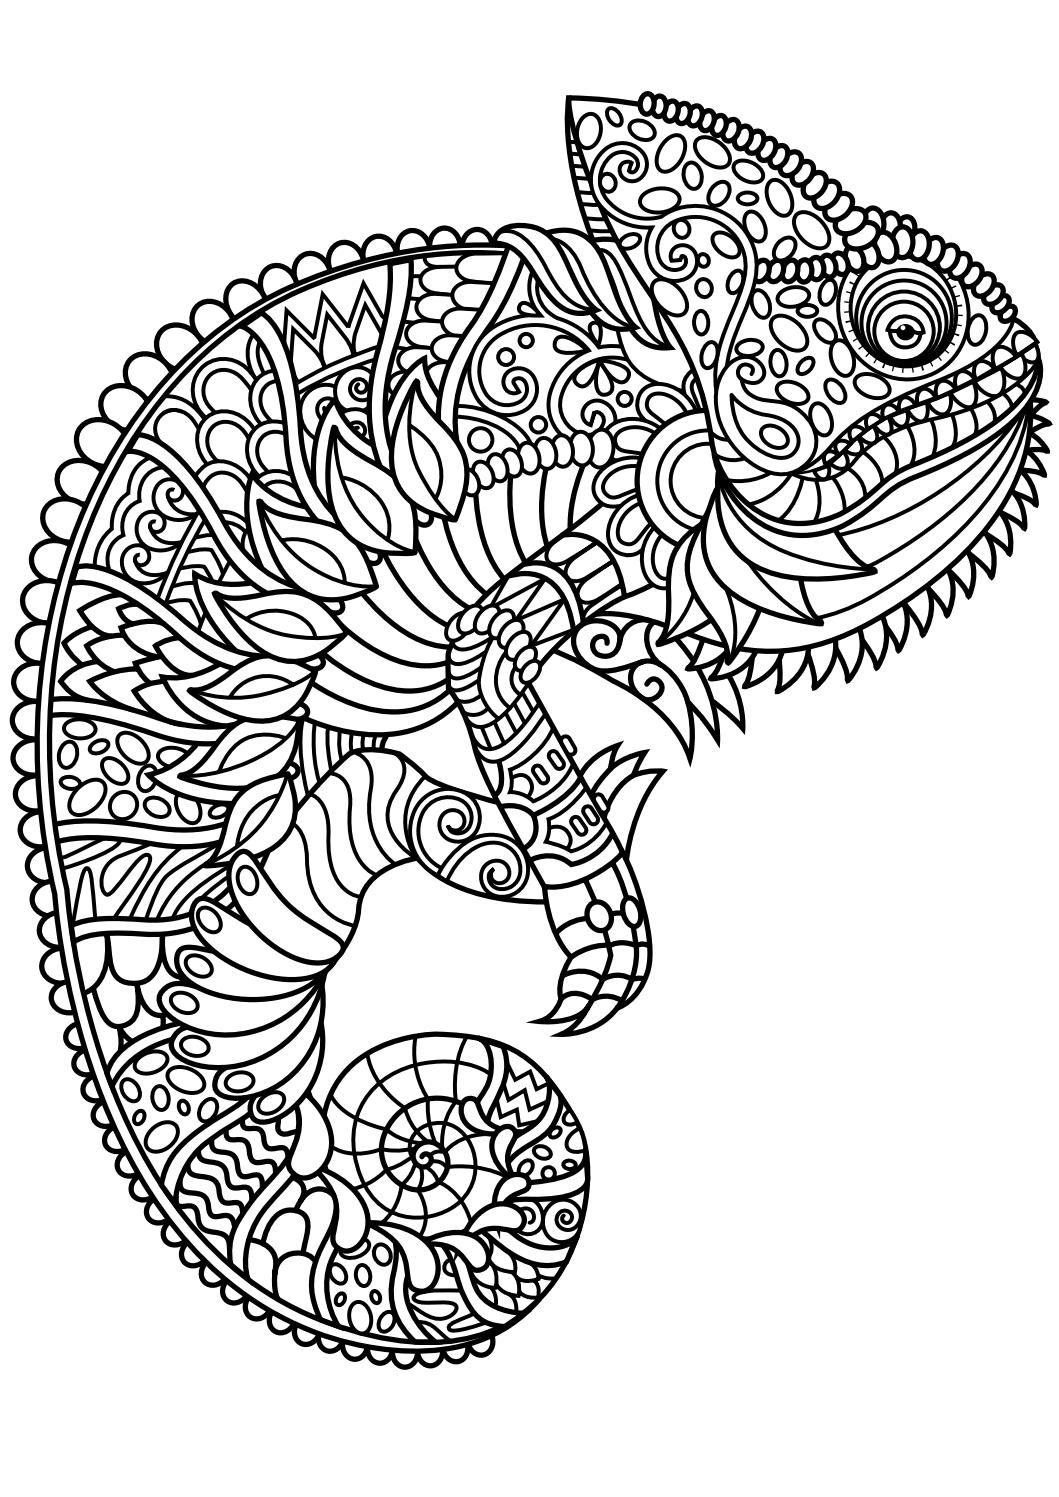 animal coloring pages pdf coloring animals dog coloring page mandala coloring pages. Black Bedroom Furniture Sets. Home Design Ideas